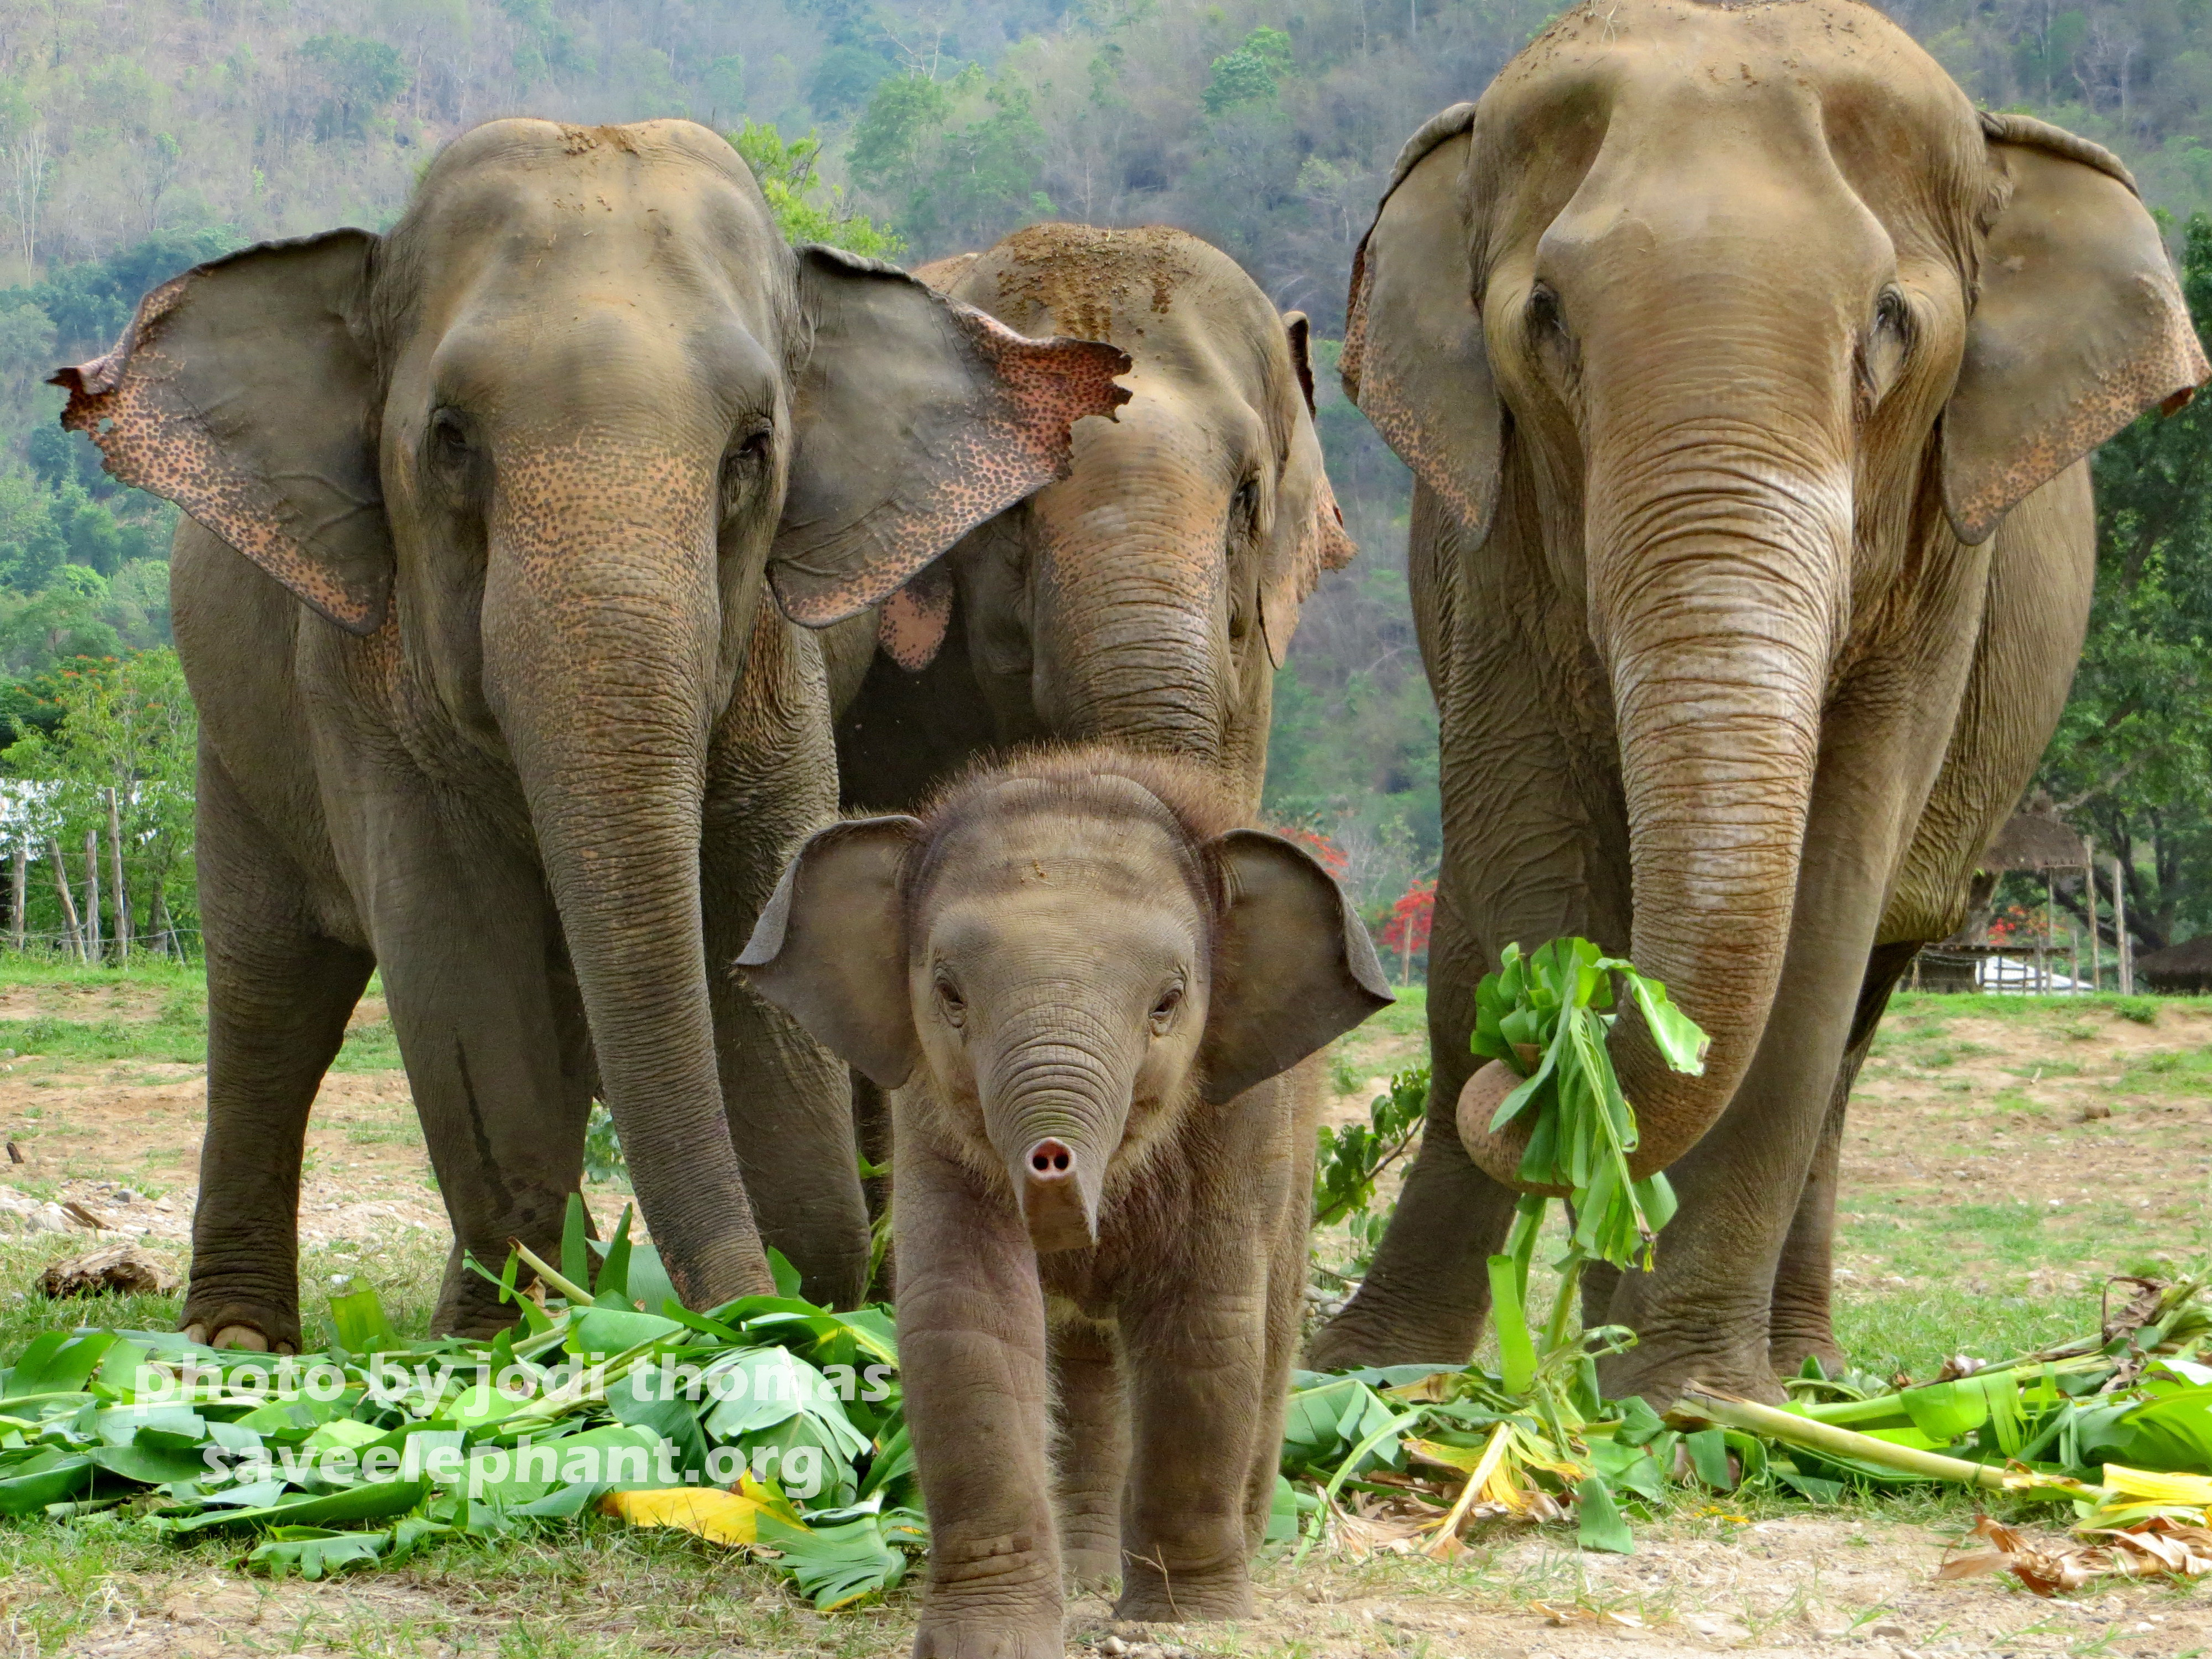 elephant attractions archives page of save elephant baby elephant navann a photo essay